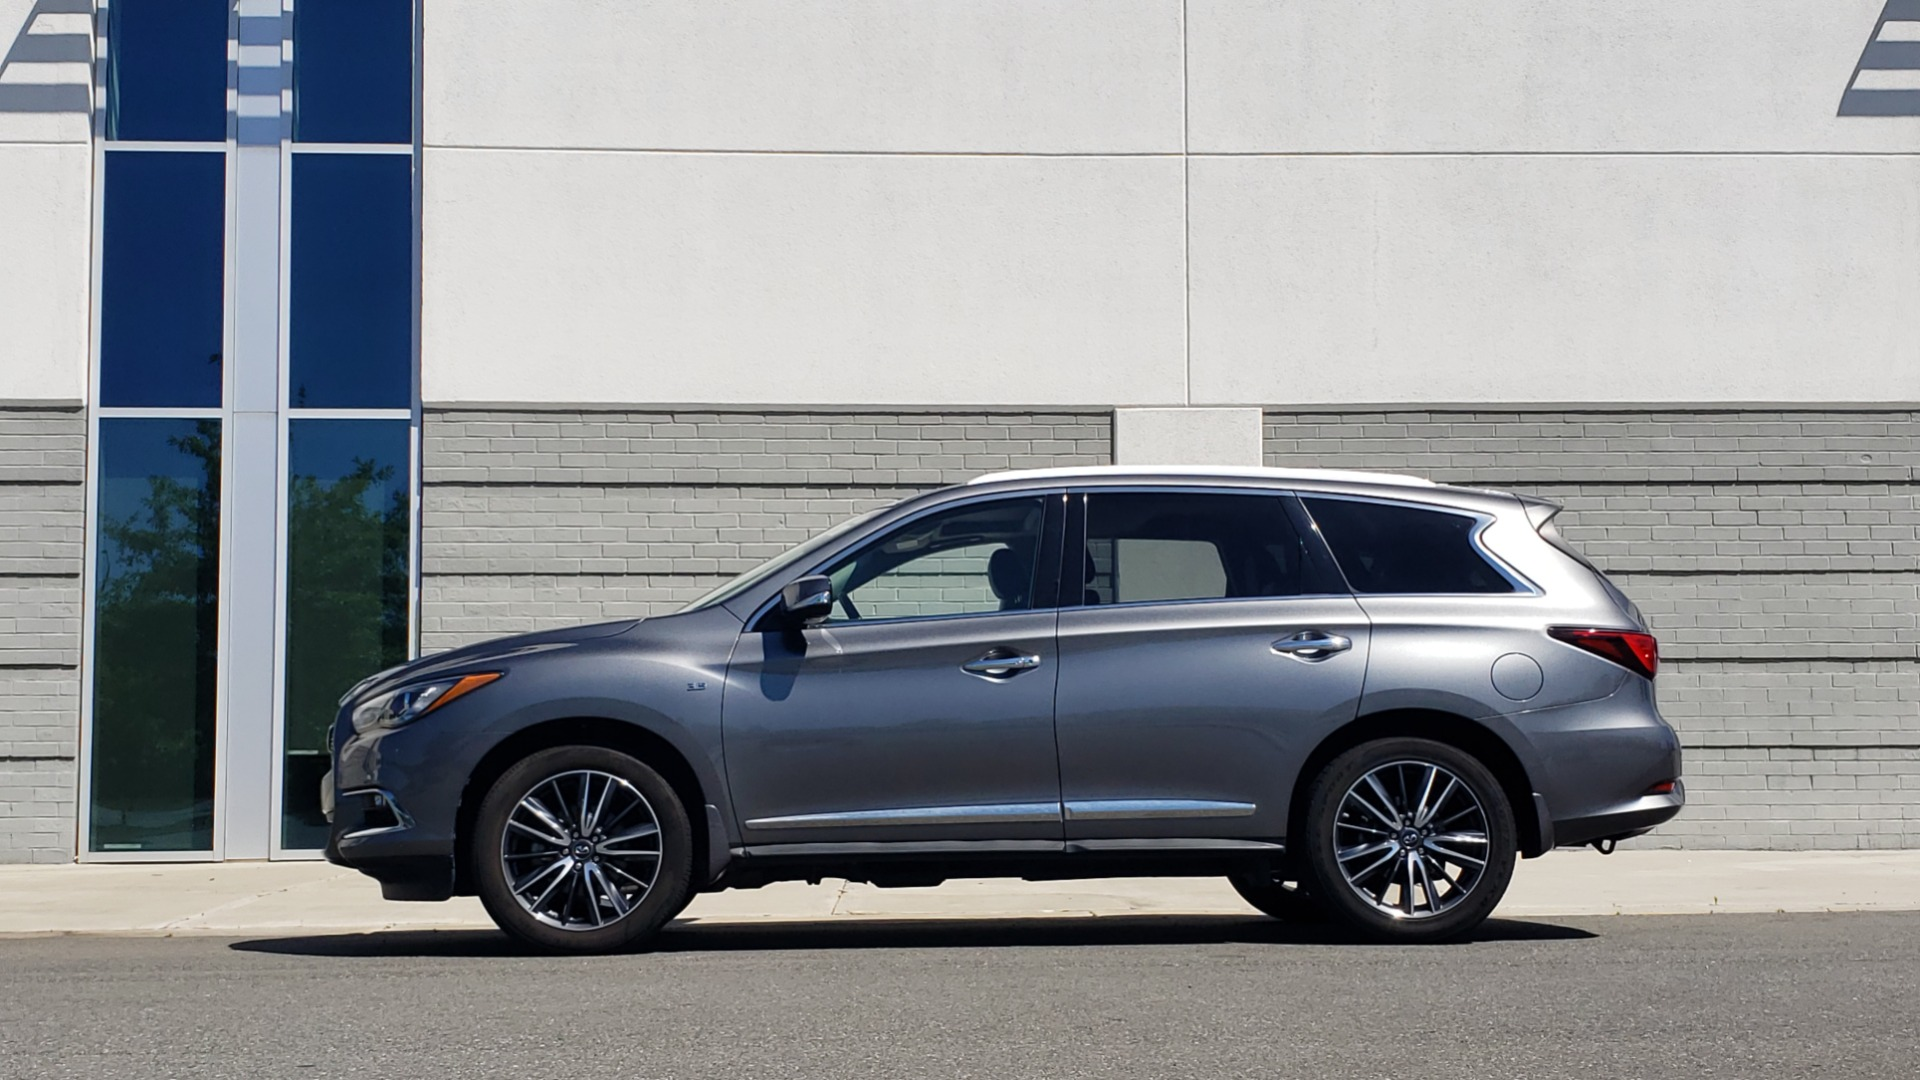 Used 2018 INFINITI QX60 3.5L V6 / FWD / CVT TRANS / NAV / SUNROOF / 3-ROWS / REARVIEW for sale $31,999 at Formula Imports in Charlotte NC 28227 5